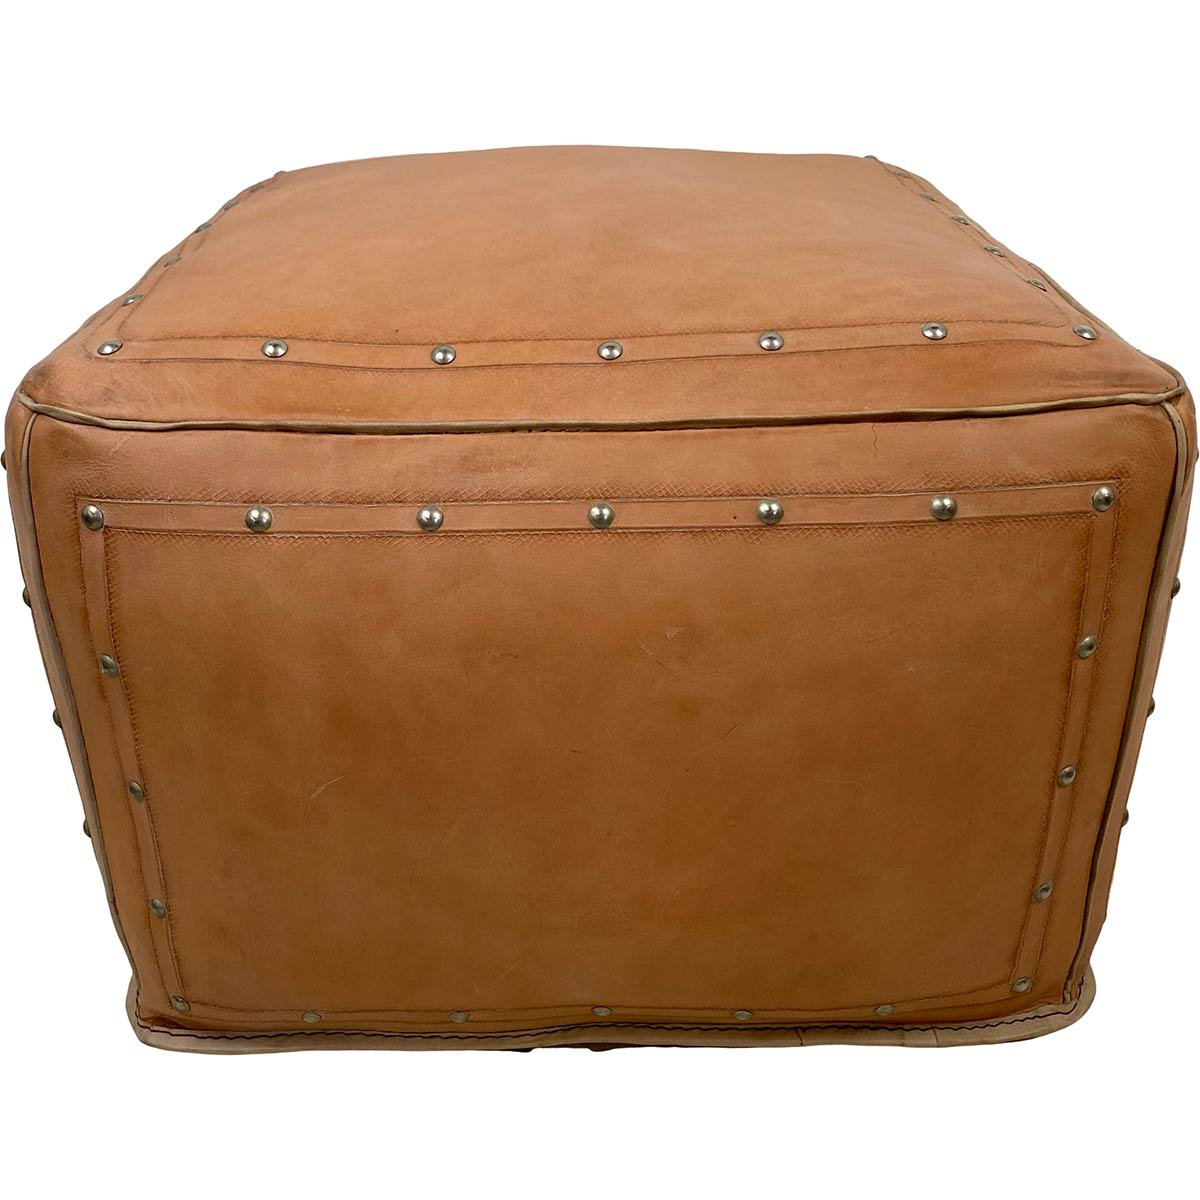 Large Square Ottoman with Tacks - Natural